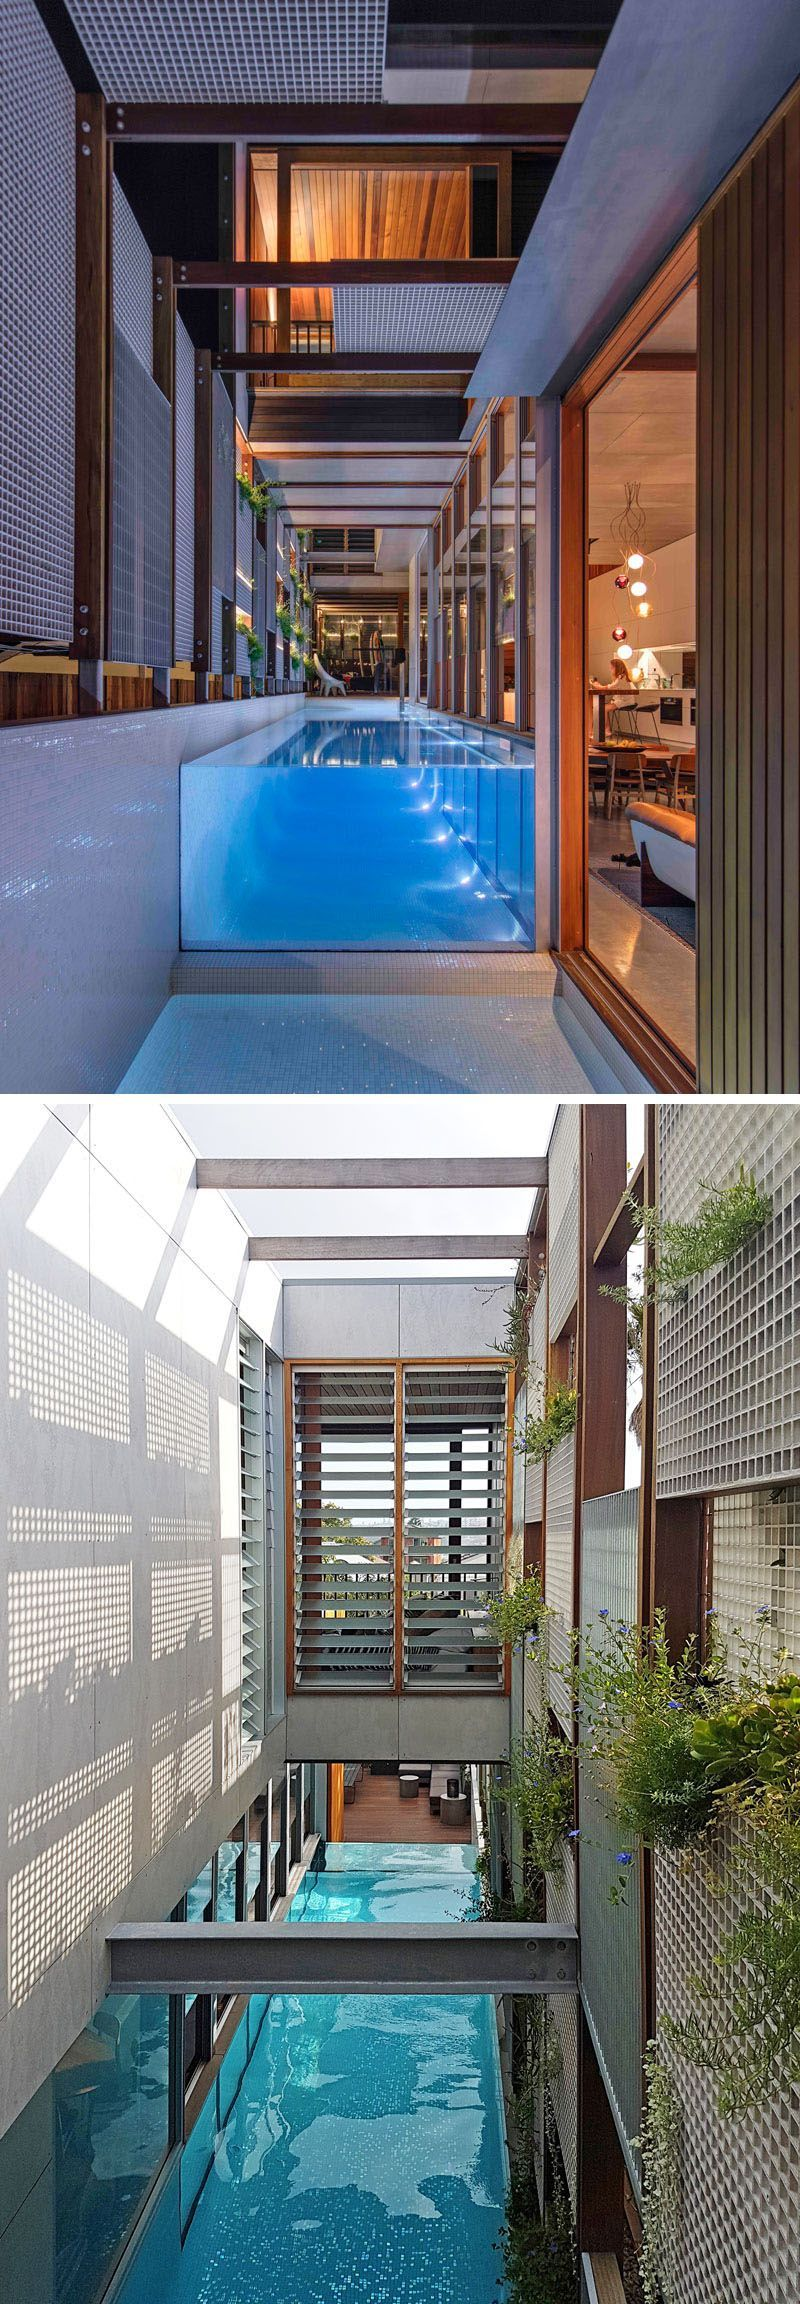 Off To The Side Of The Living Room In This Modern House Is A Small Pond At The End Of The Above Ground Swimming Modern Pools Pool Houses Swimming Pool Designs